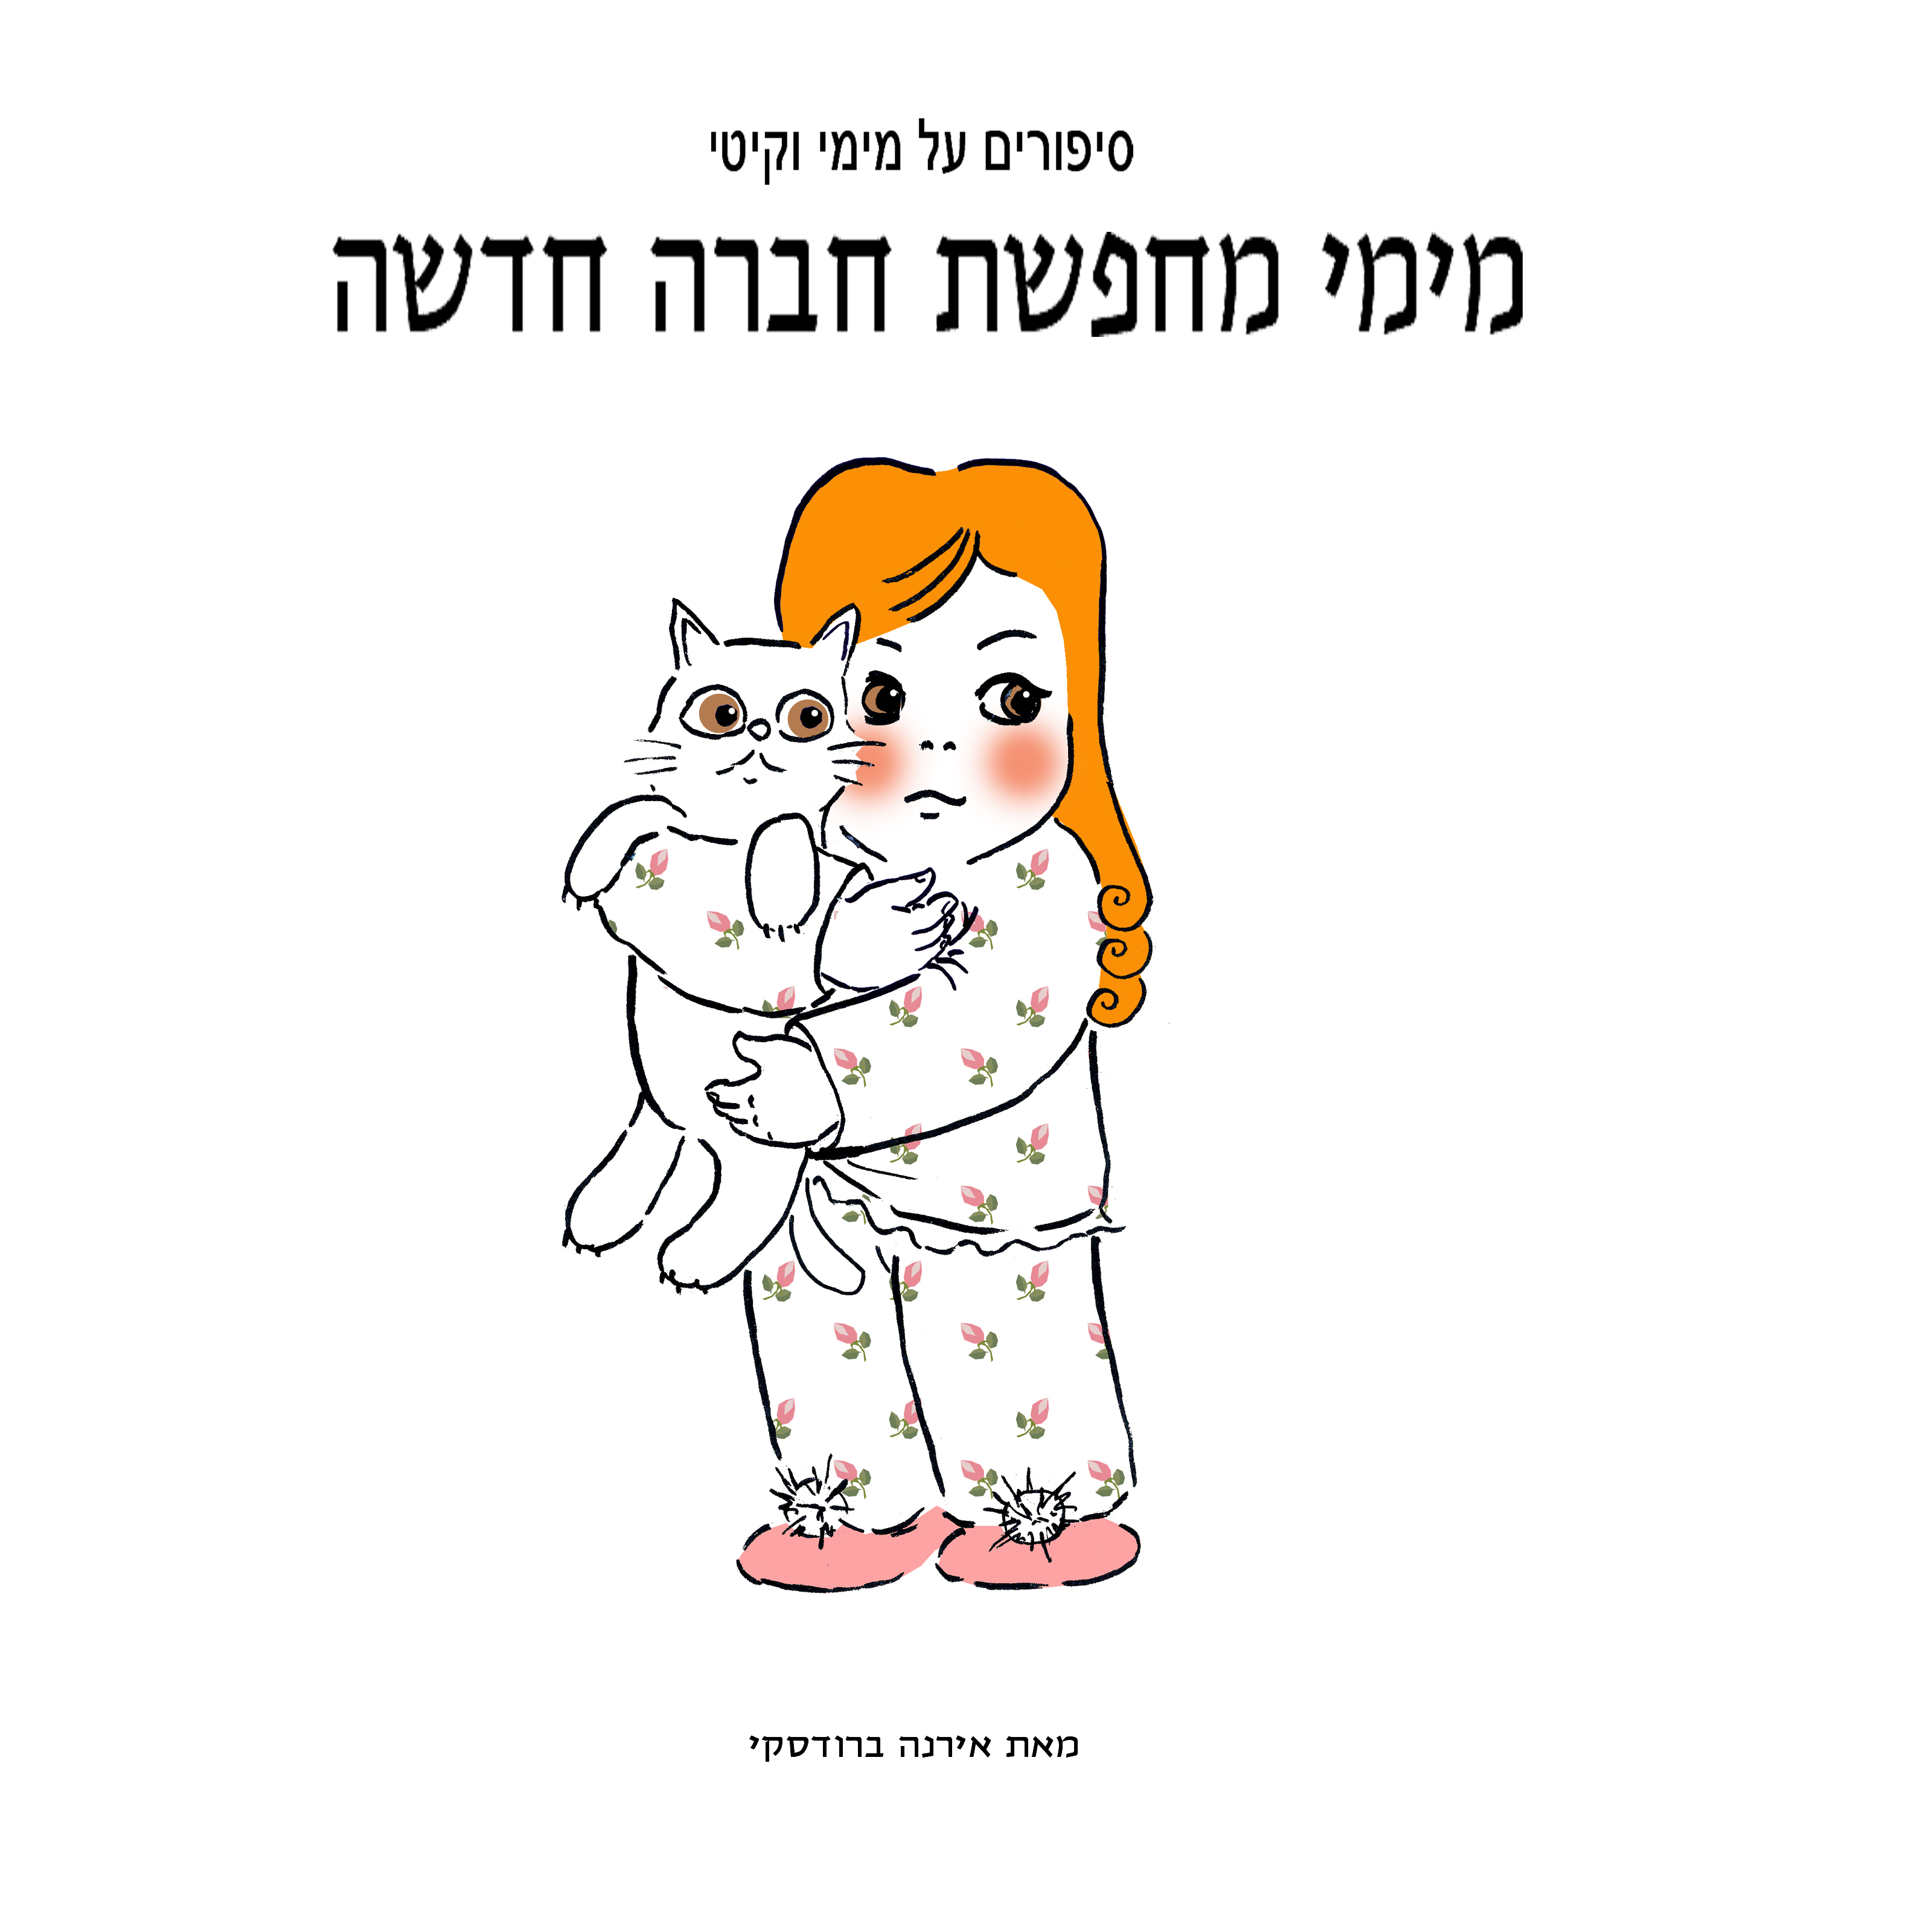 מימי&קיטי – 15 – מימי מחפשת חברה חדשה by Irena Brodeski - Illustrated by Irena Brodeski - Ourboox.com